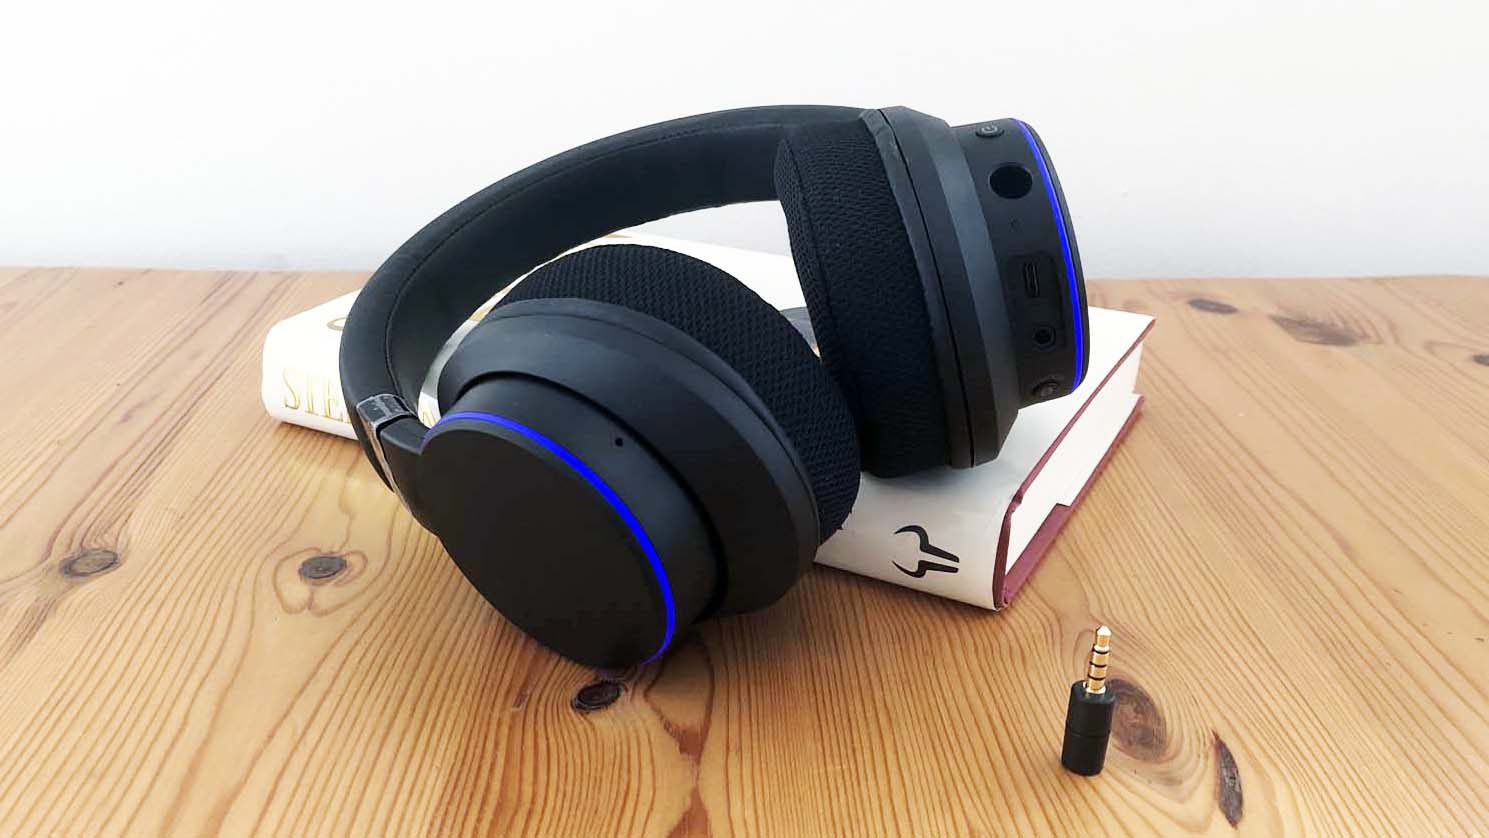 A photo of the Creative SXFI Air headphones